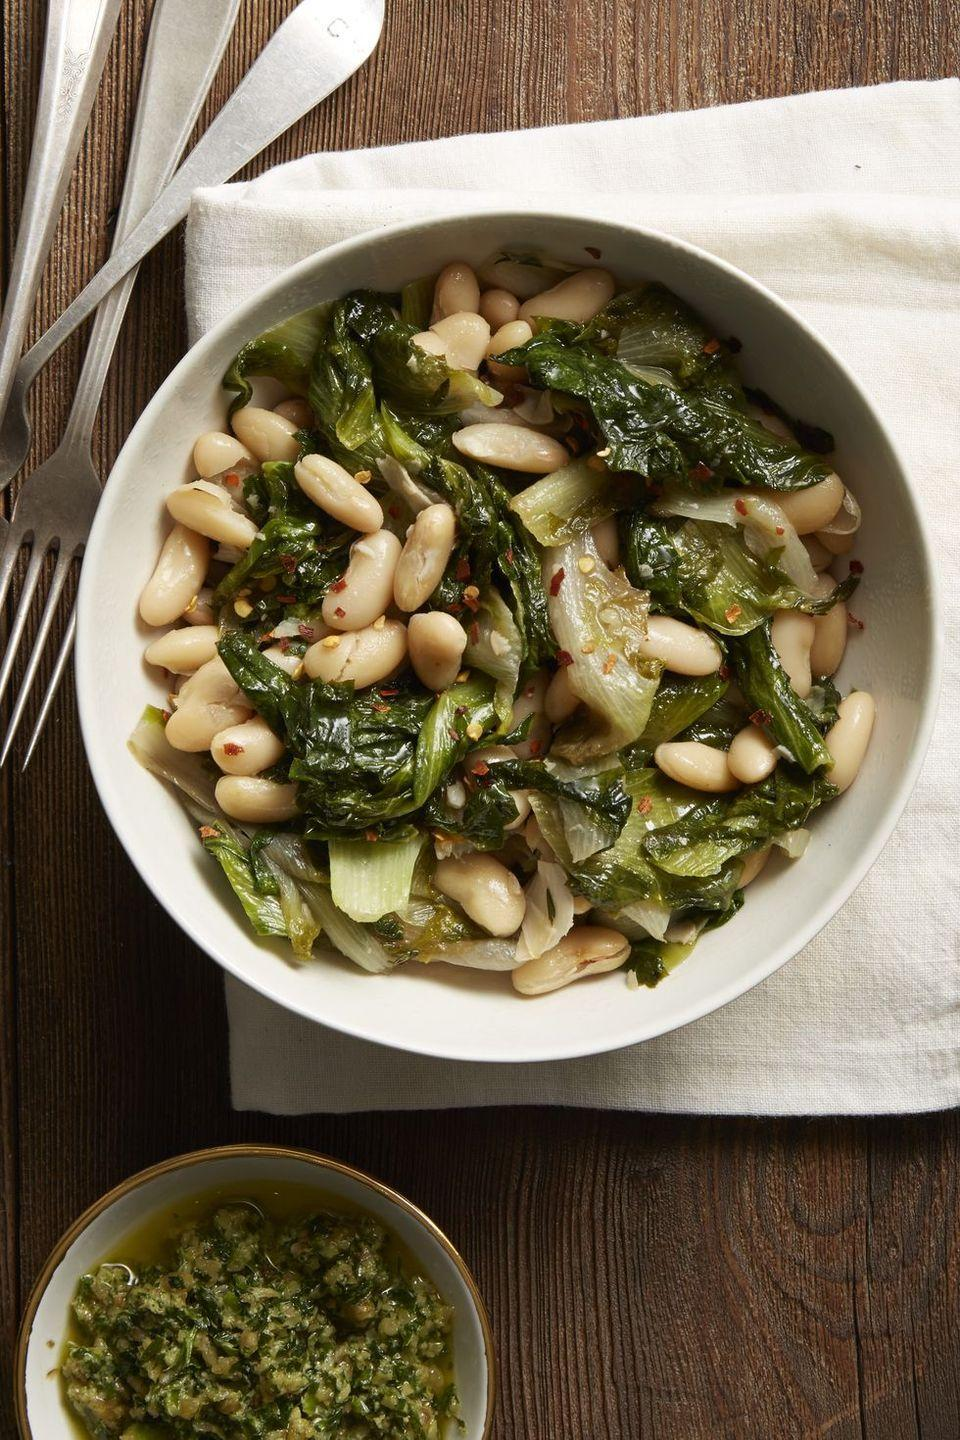 """<p>Nope, there is no such thing as """"too much green"""" on the dinner table. </p><p><em><a href=""""https://www.goodhousekeeping.com/food-recipes/easy/a35797/garlicky-beans-and-greens/"""" rel=""""nofollow noopener"""" target=""""_blank"""" data-ylk=""""slk:Get the recipe for Garlicky Beans and Greens »"""" class=""""link rapid-noclick-resp"""">Get the recipe for Garlicky Beans and Greens »</a></em></p><p><strong>RELATED: </strong><a href=""""https://www.goodhousekeeping.com/holidays/christmas-ideas/g1875/healthy-diet-christmas-recipes/"""" rel=""""nofollow noopener"""" target=""""_blank"""" data-ylk=""""slk:35 Healthy Christmas Recipes That Still Taste Totally Indulgent"""" class=""""link rapid-noclick-resp"""">35 Healthy Christmas Recipes That Still Taste Totally Indulgent</a></p>"""